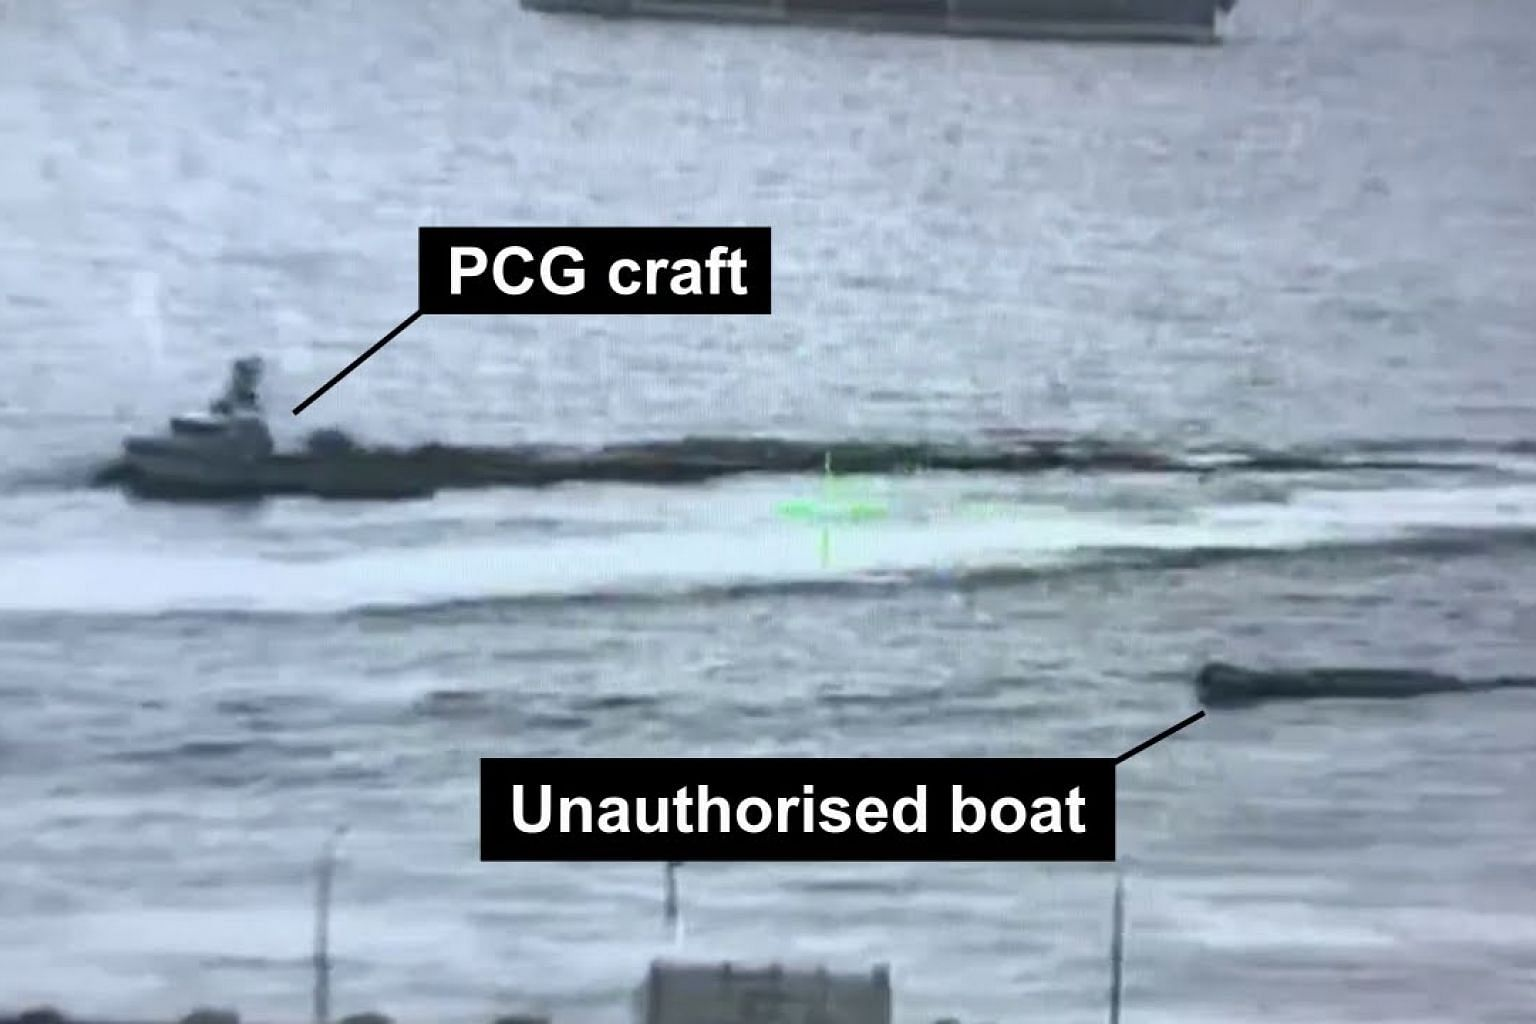 Police coast guard intercepting an unauthorised boat